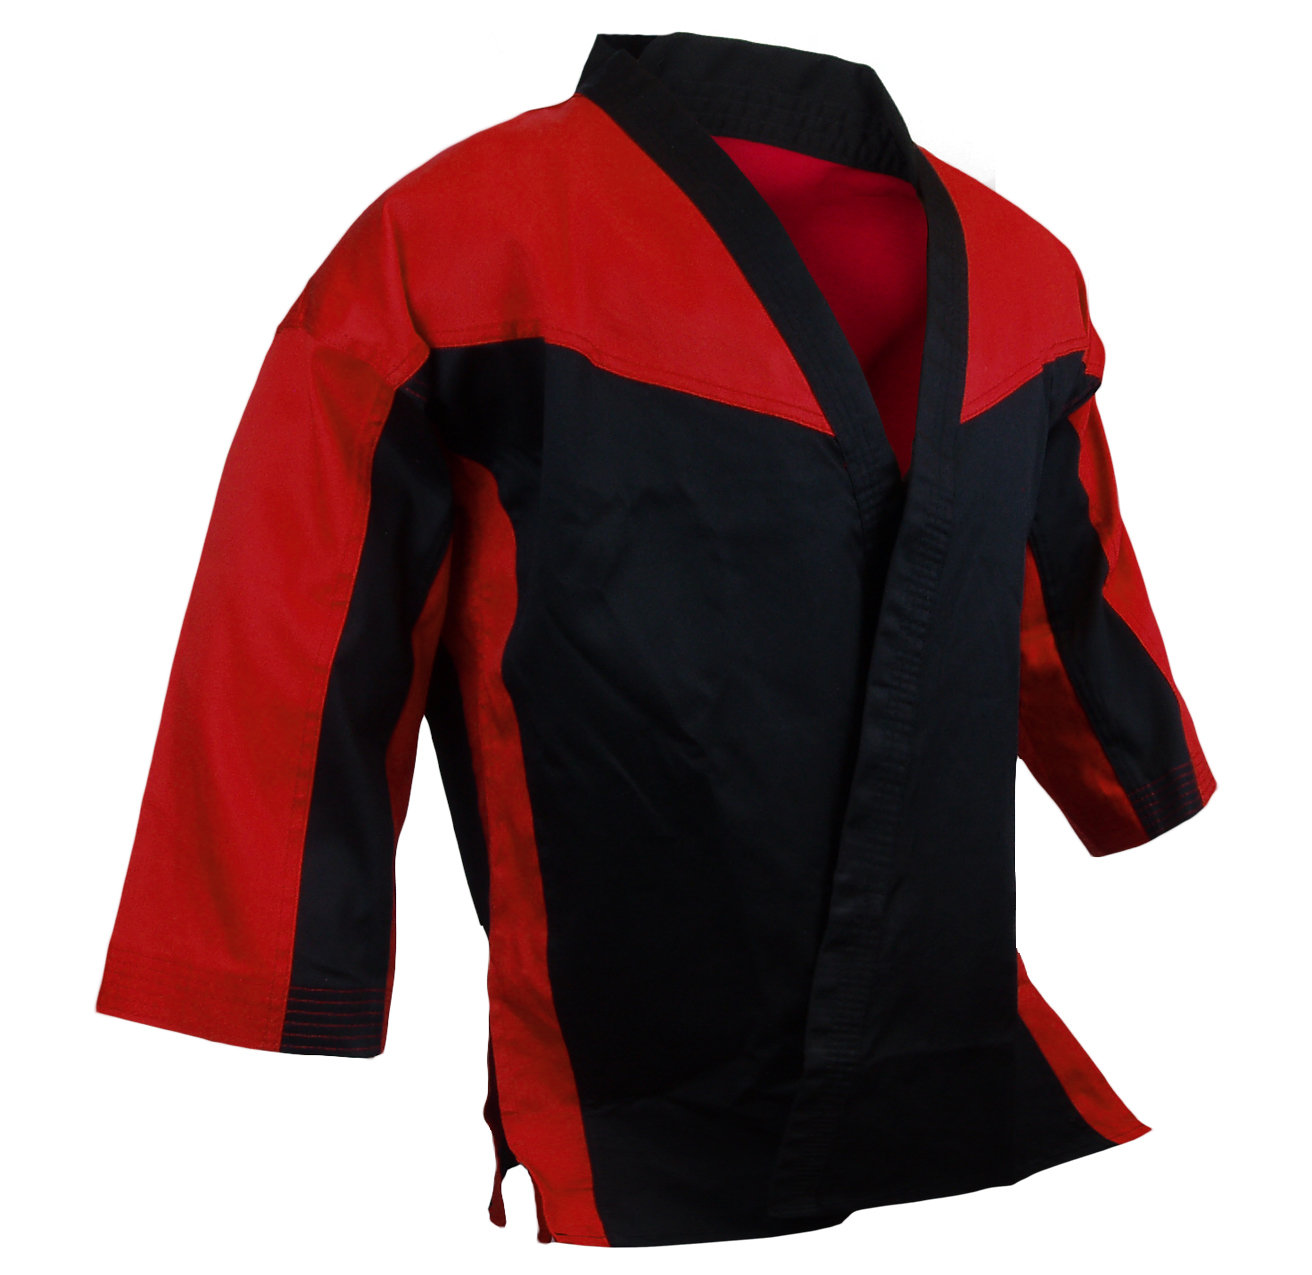 Team - Jacket Open, Red/Black Combo